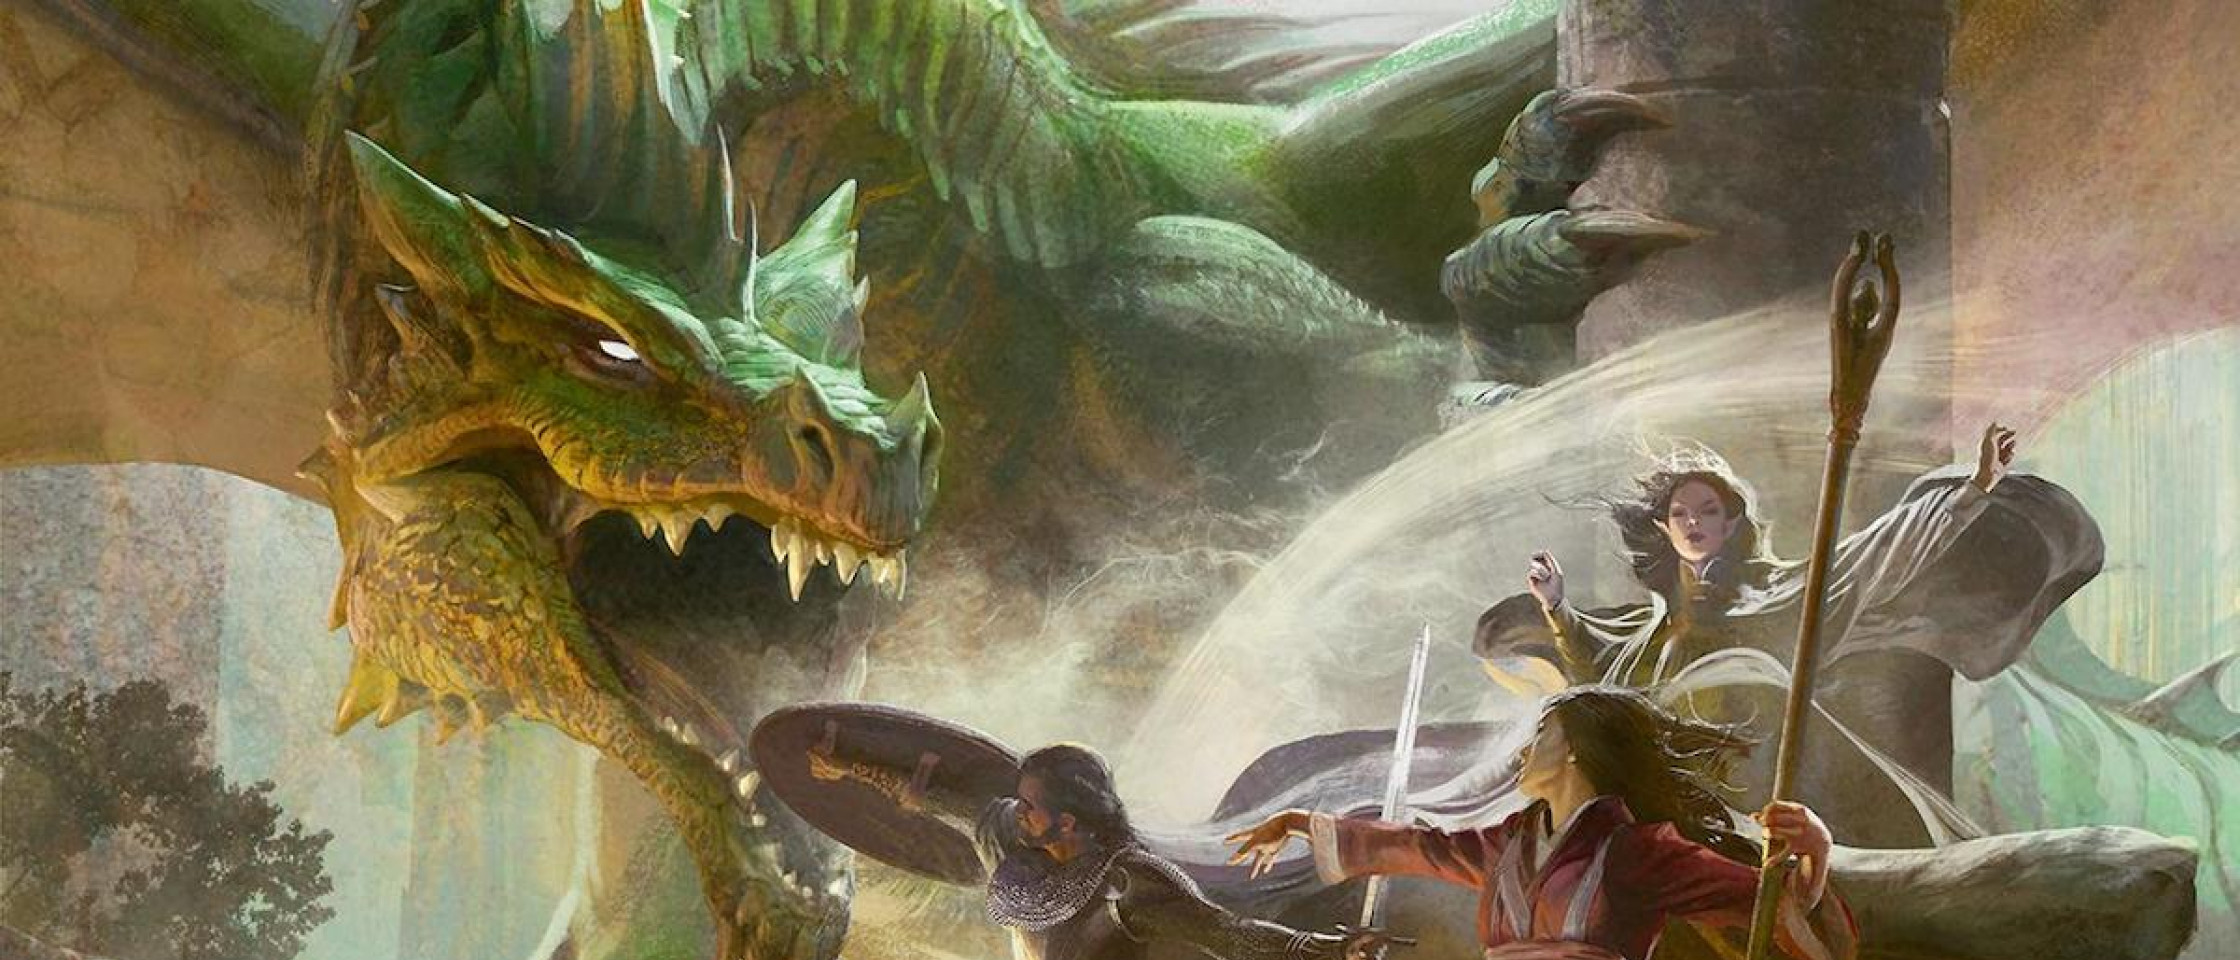 The D&D Starter Set artwork depicting a battle between 3 adventurers and a huge dragon